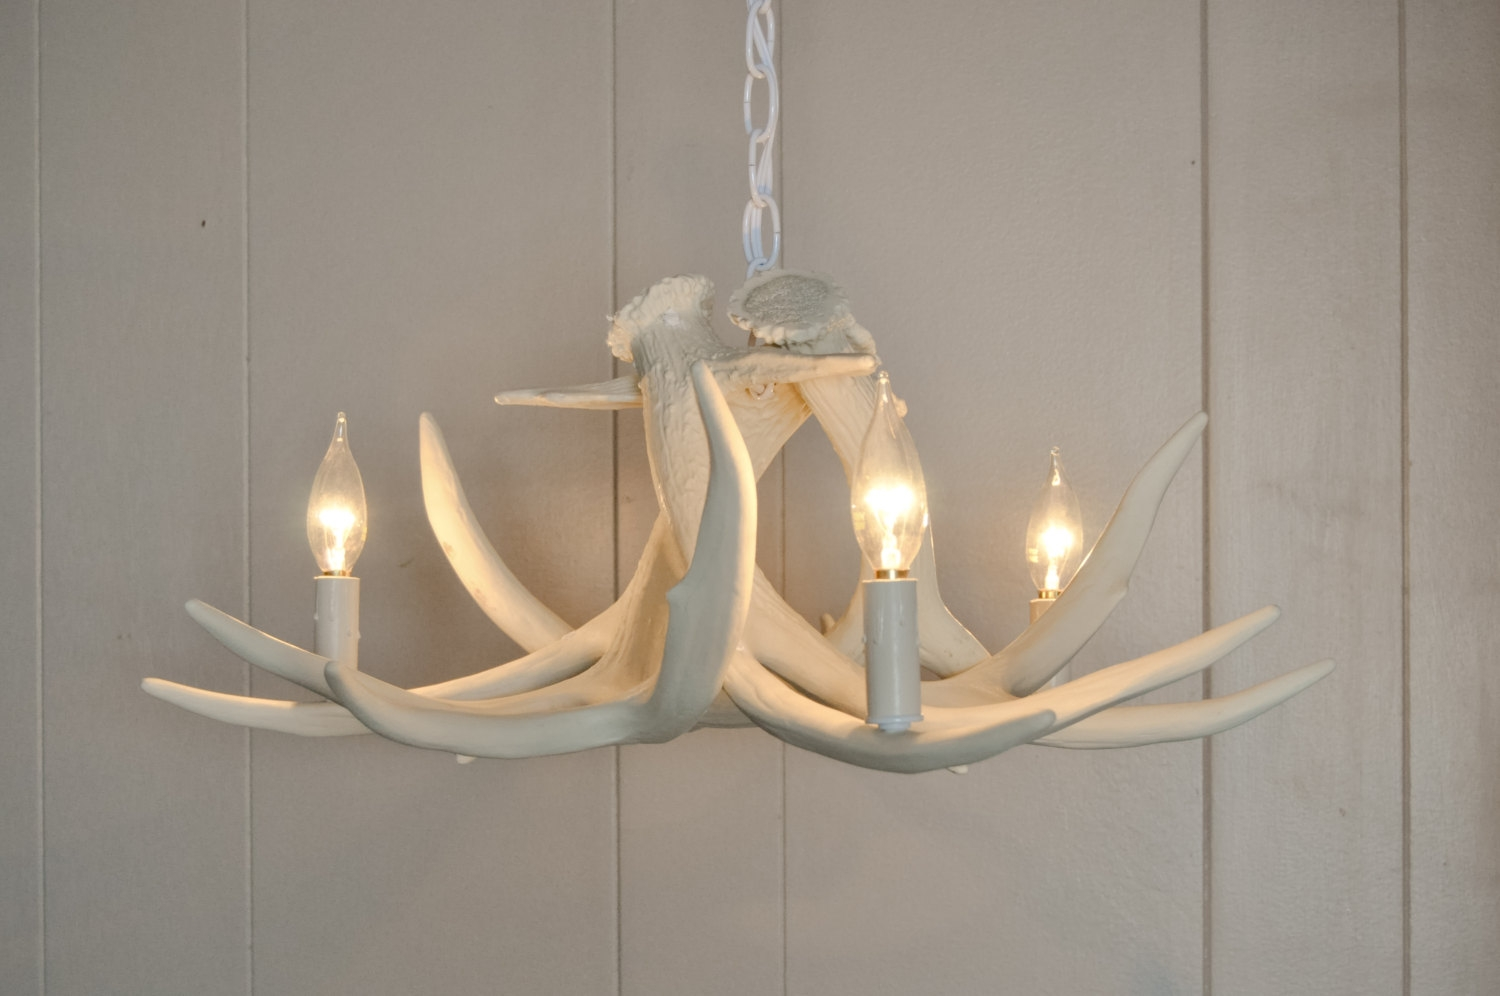 White Antler Chandelier Faux Antler Chandelier W3c Antler Inside Small White Chandeliers (Image 23 of 25)